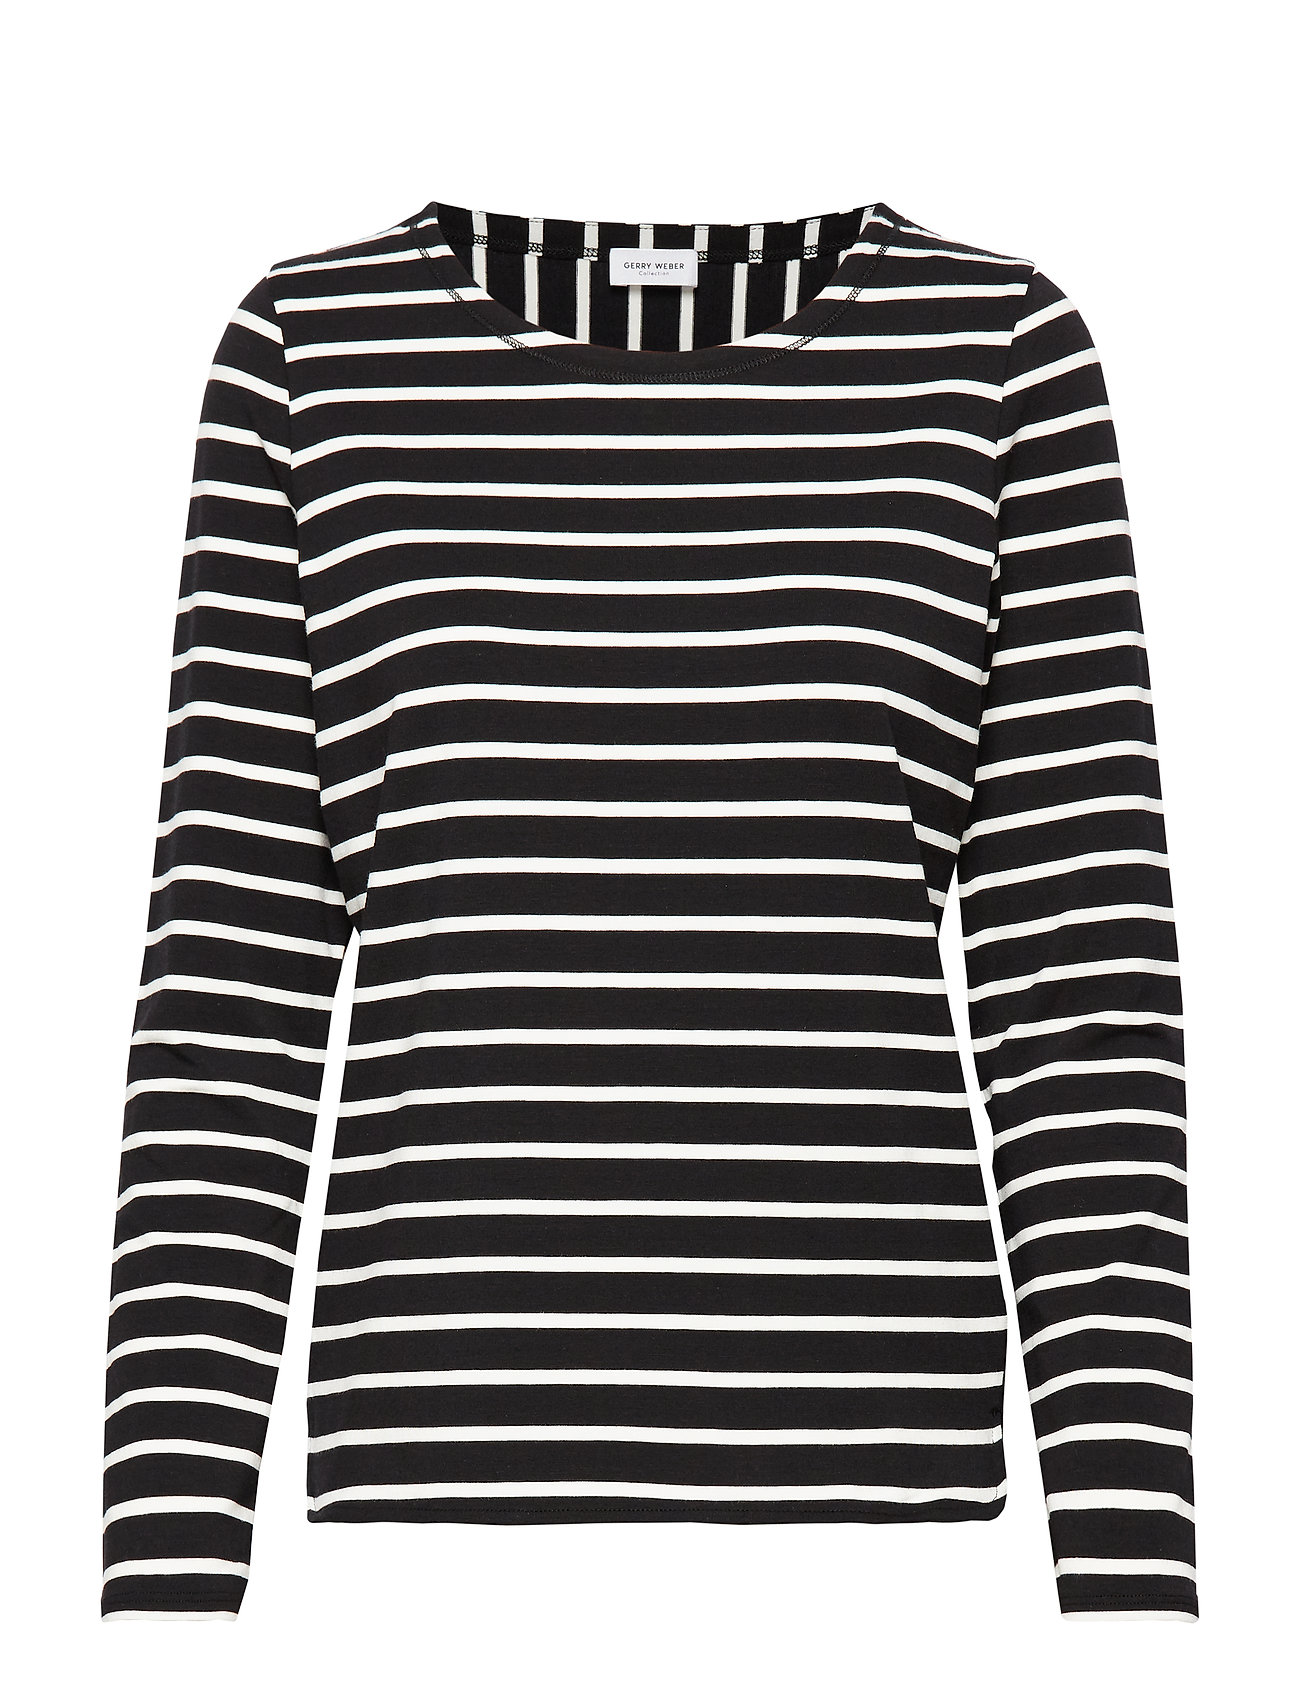 Gerry Weber T-SHIRT LONG-SLEEVE - BLACK/ECRU/WHITE HOOPS